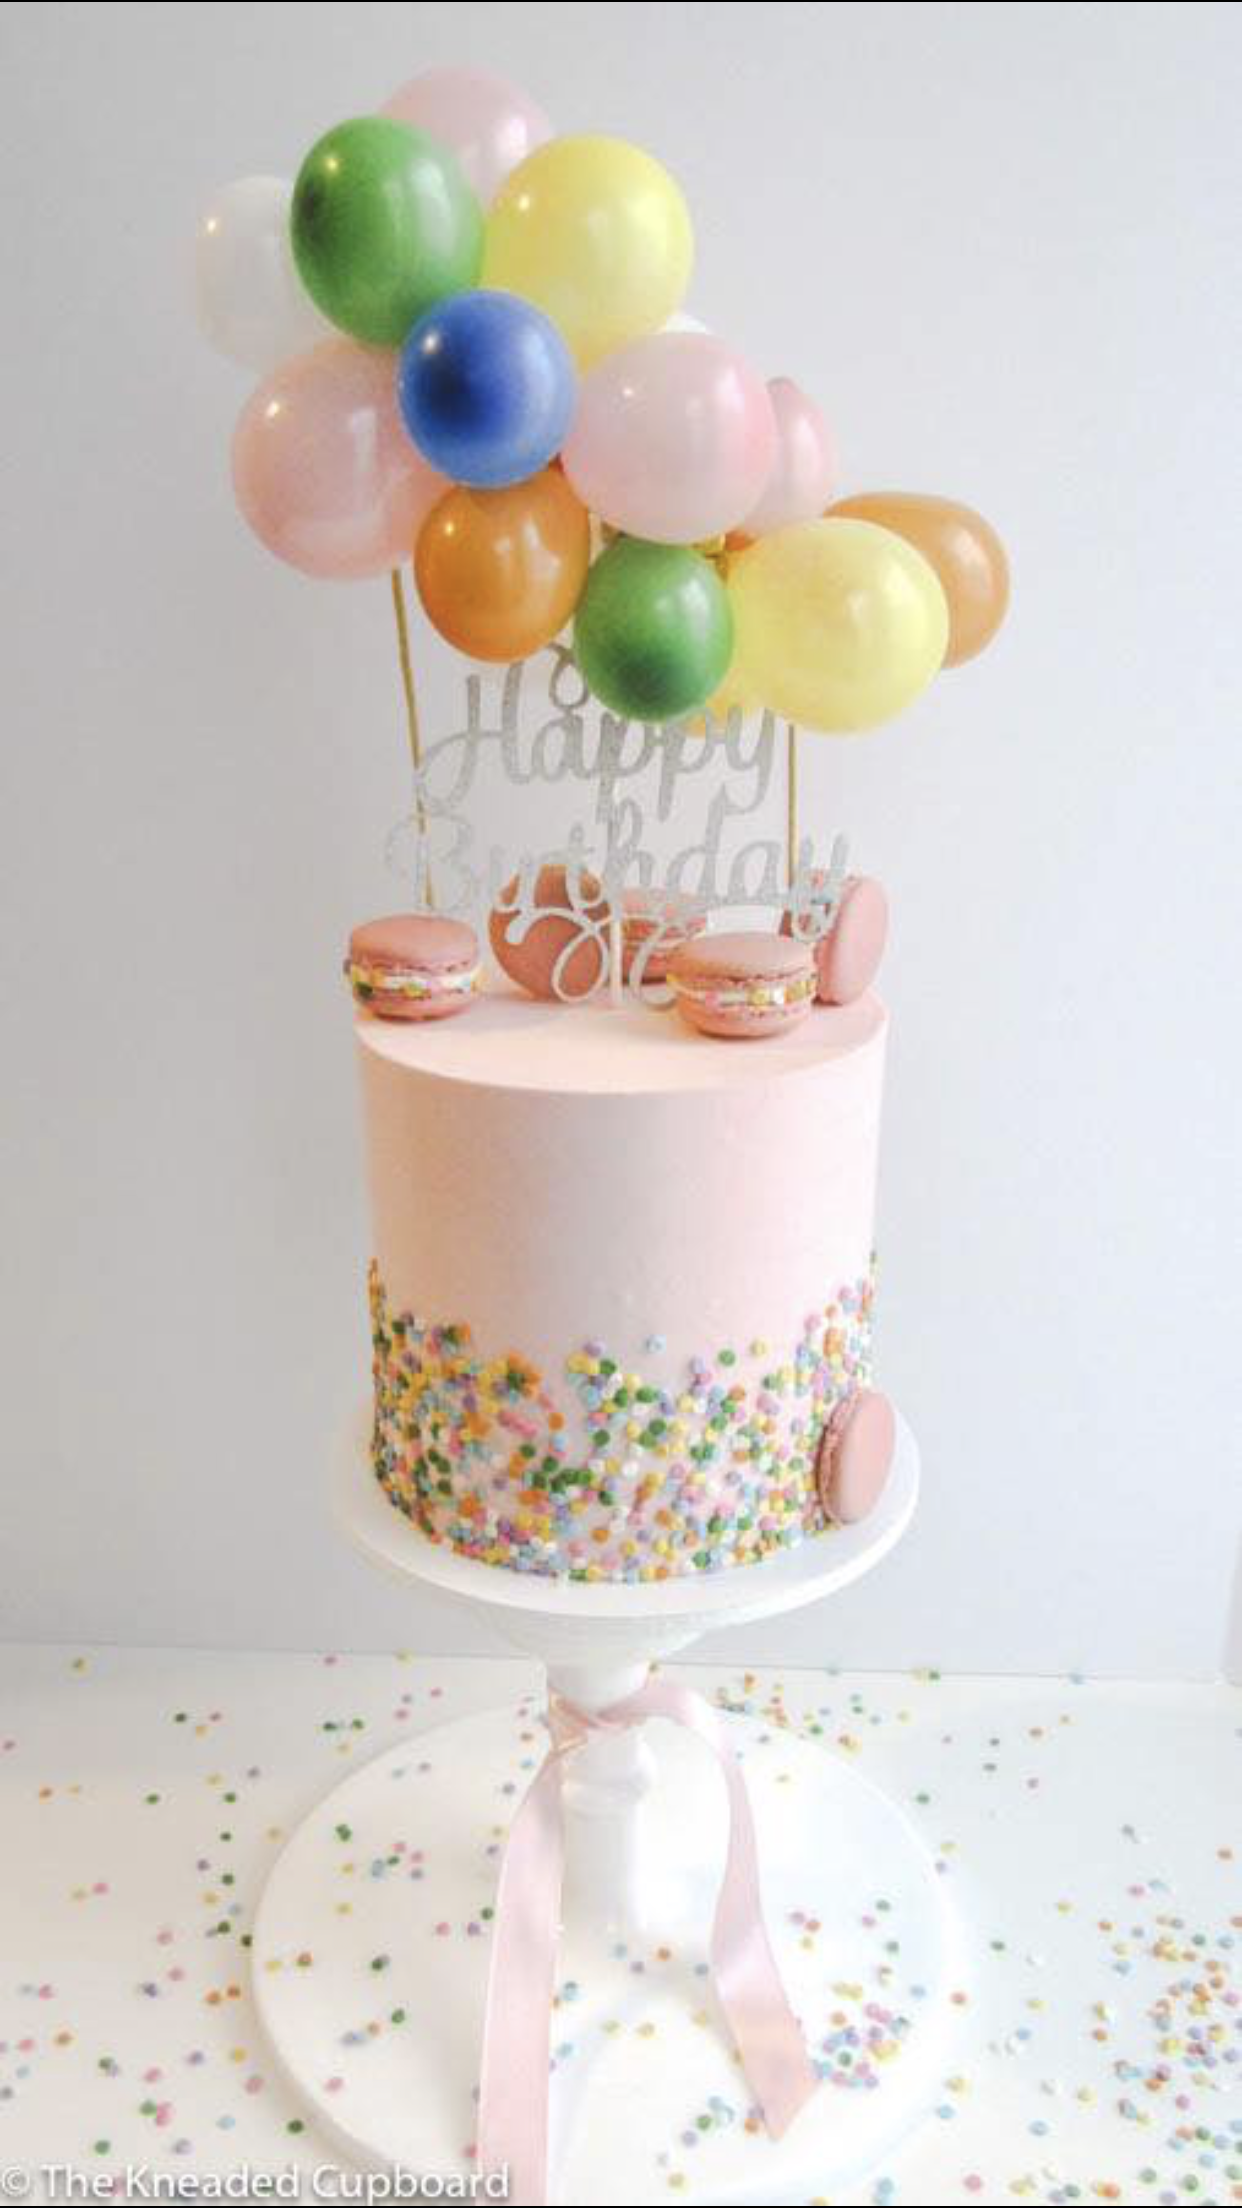 Fabulous Funfetti Cake With Balloons On Top Balloon Birthday Cakes Funny Birthday Cards Online Overcheapnameinfo